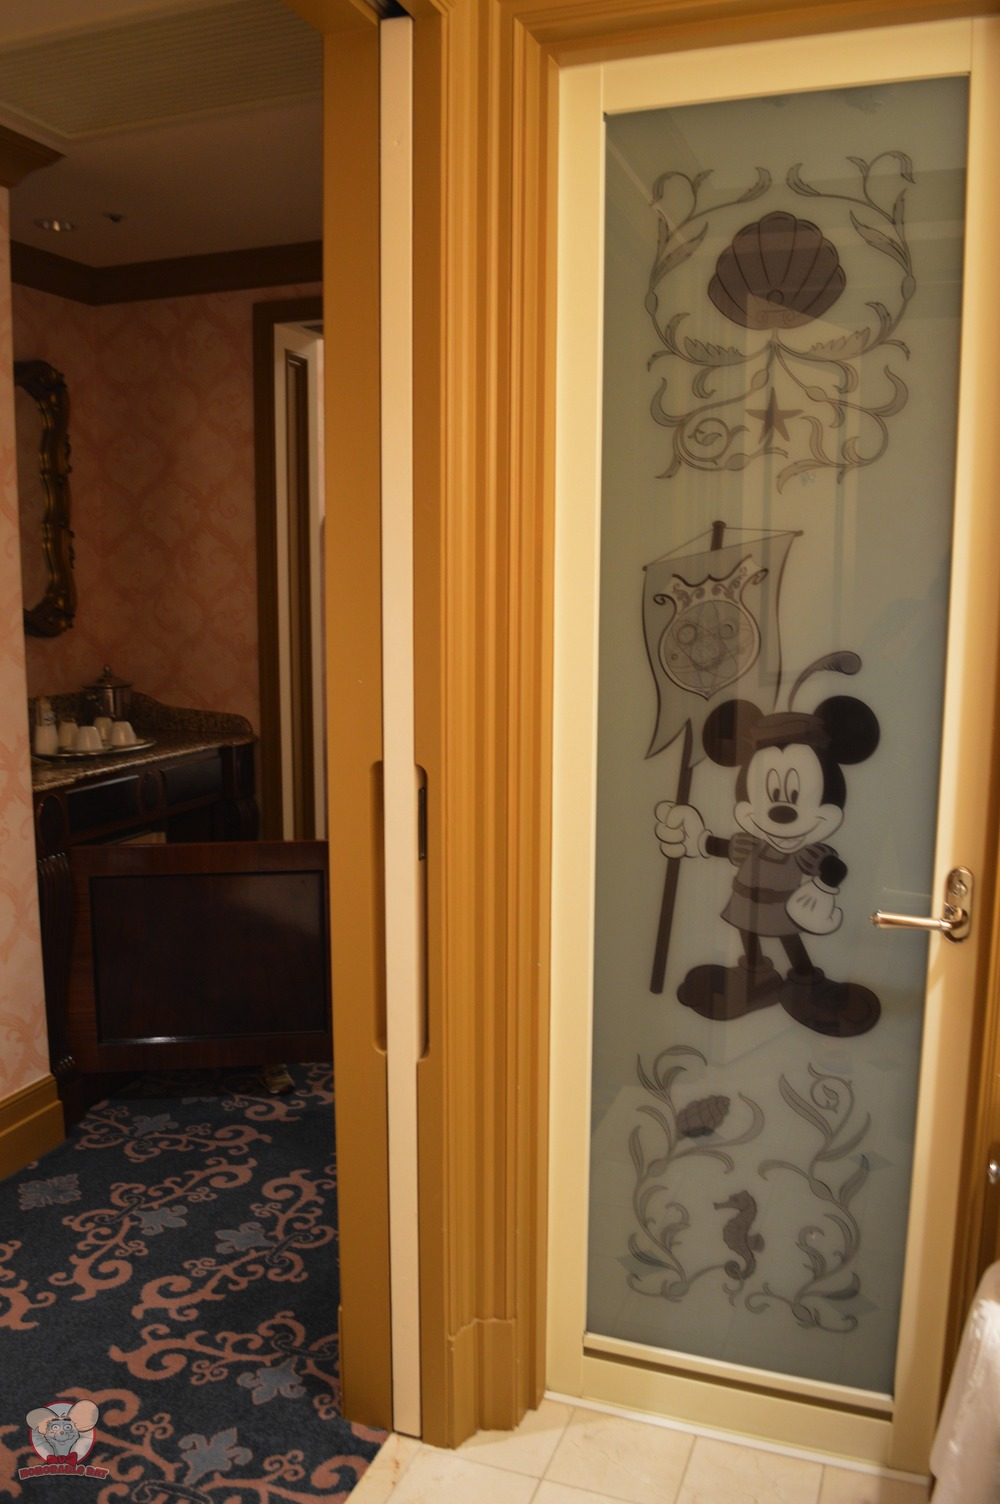 Mickey on the bathroom door